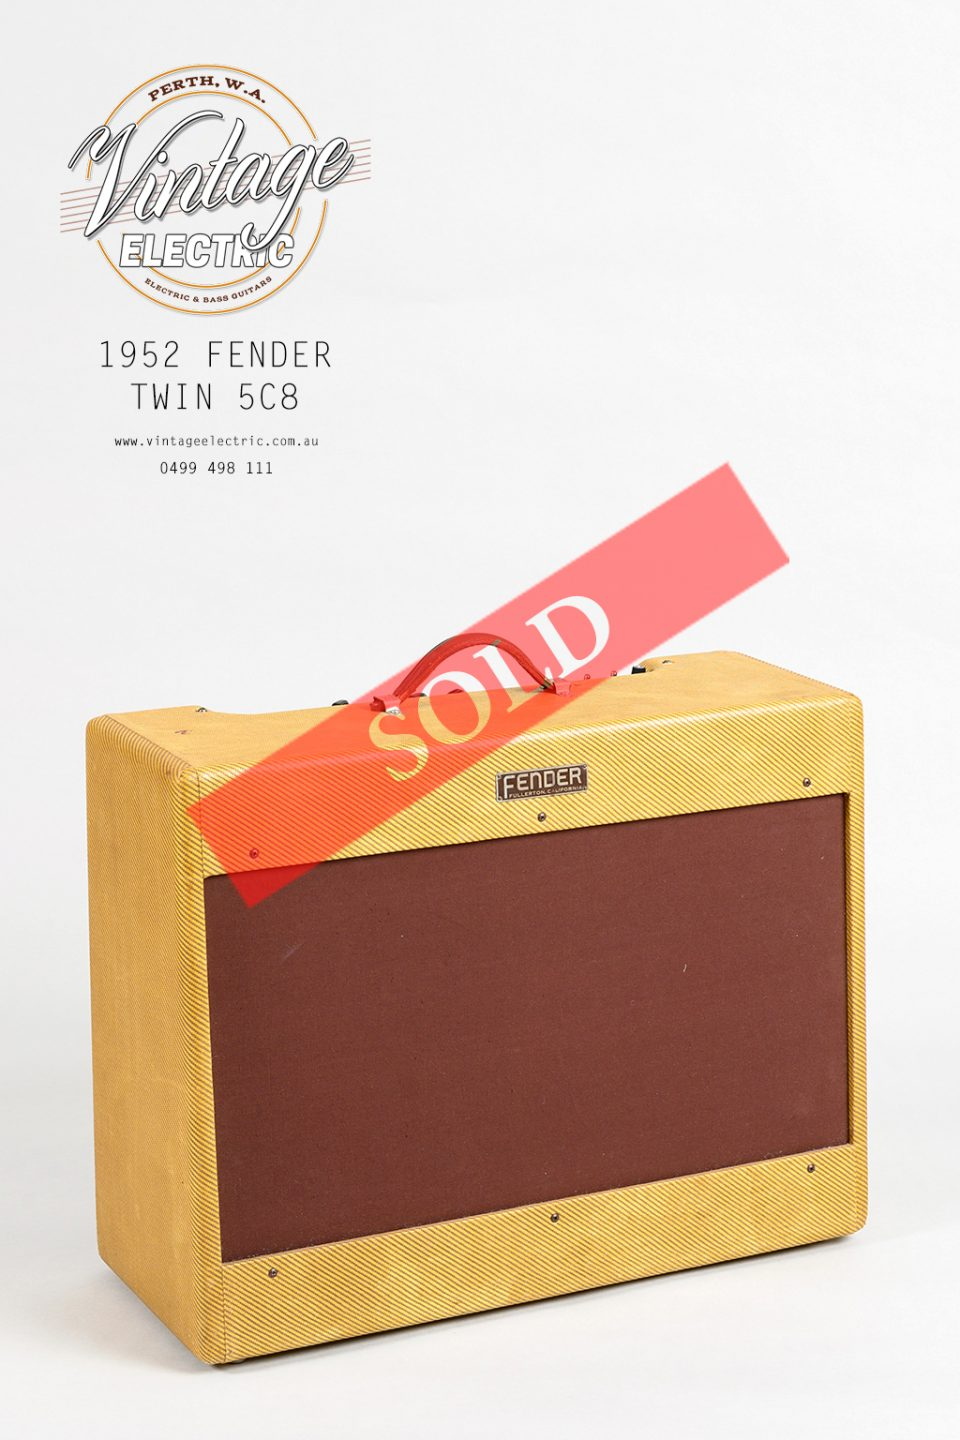 1952 Fender Twin Large SOLD